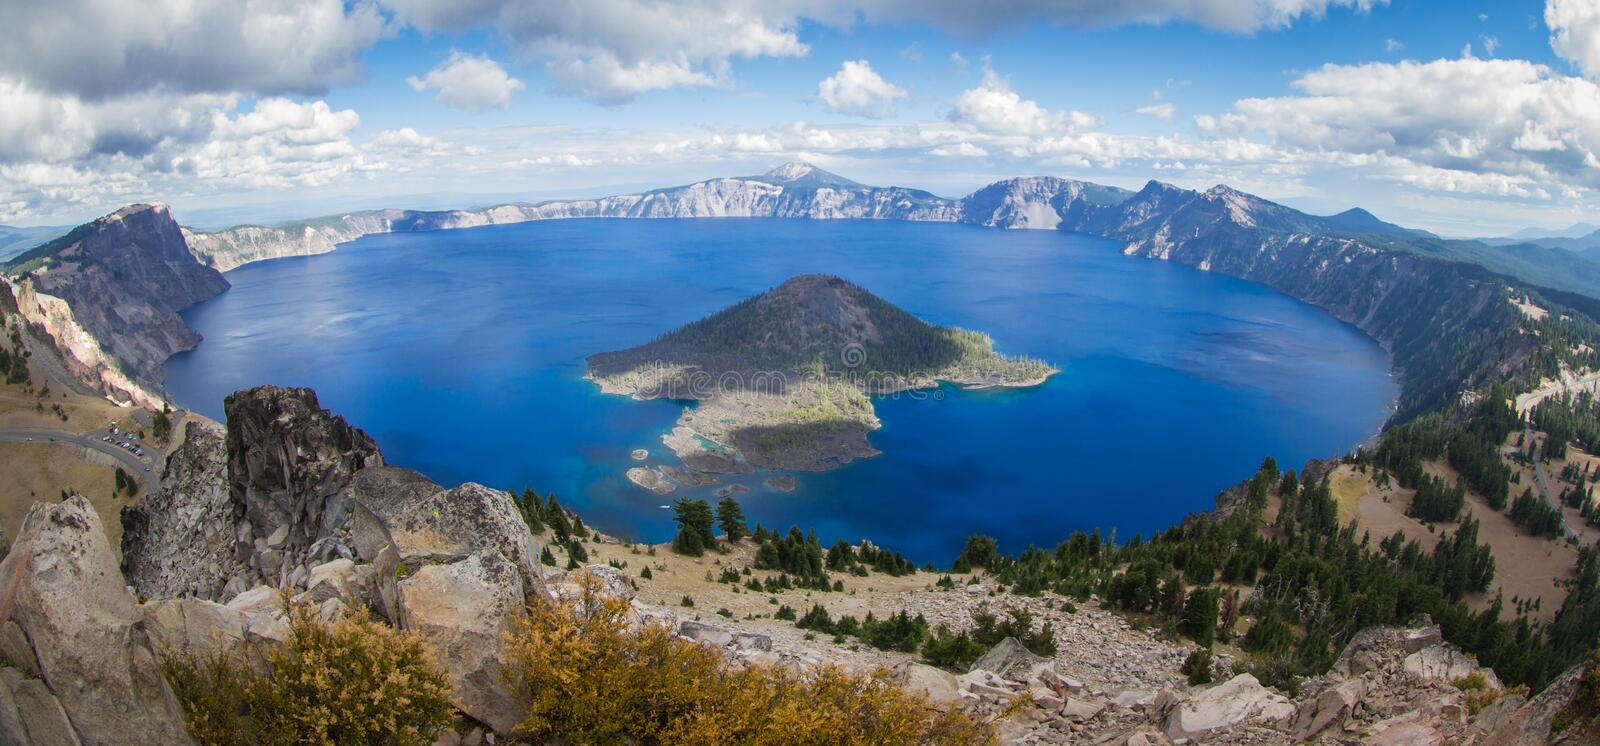 Crater Lake Oregon. Wide angle view of Crater Lake form the top of Watchman's Peak, beautiful landscape in Oregon royalty free stock photo